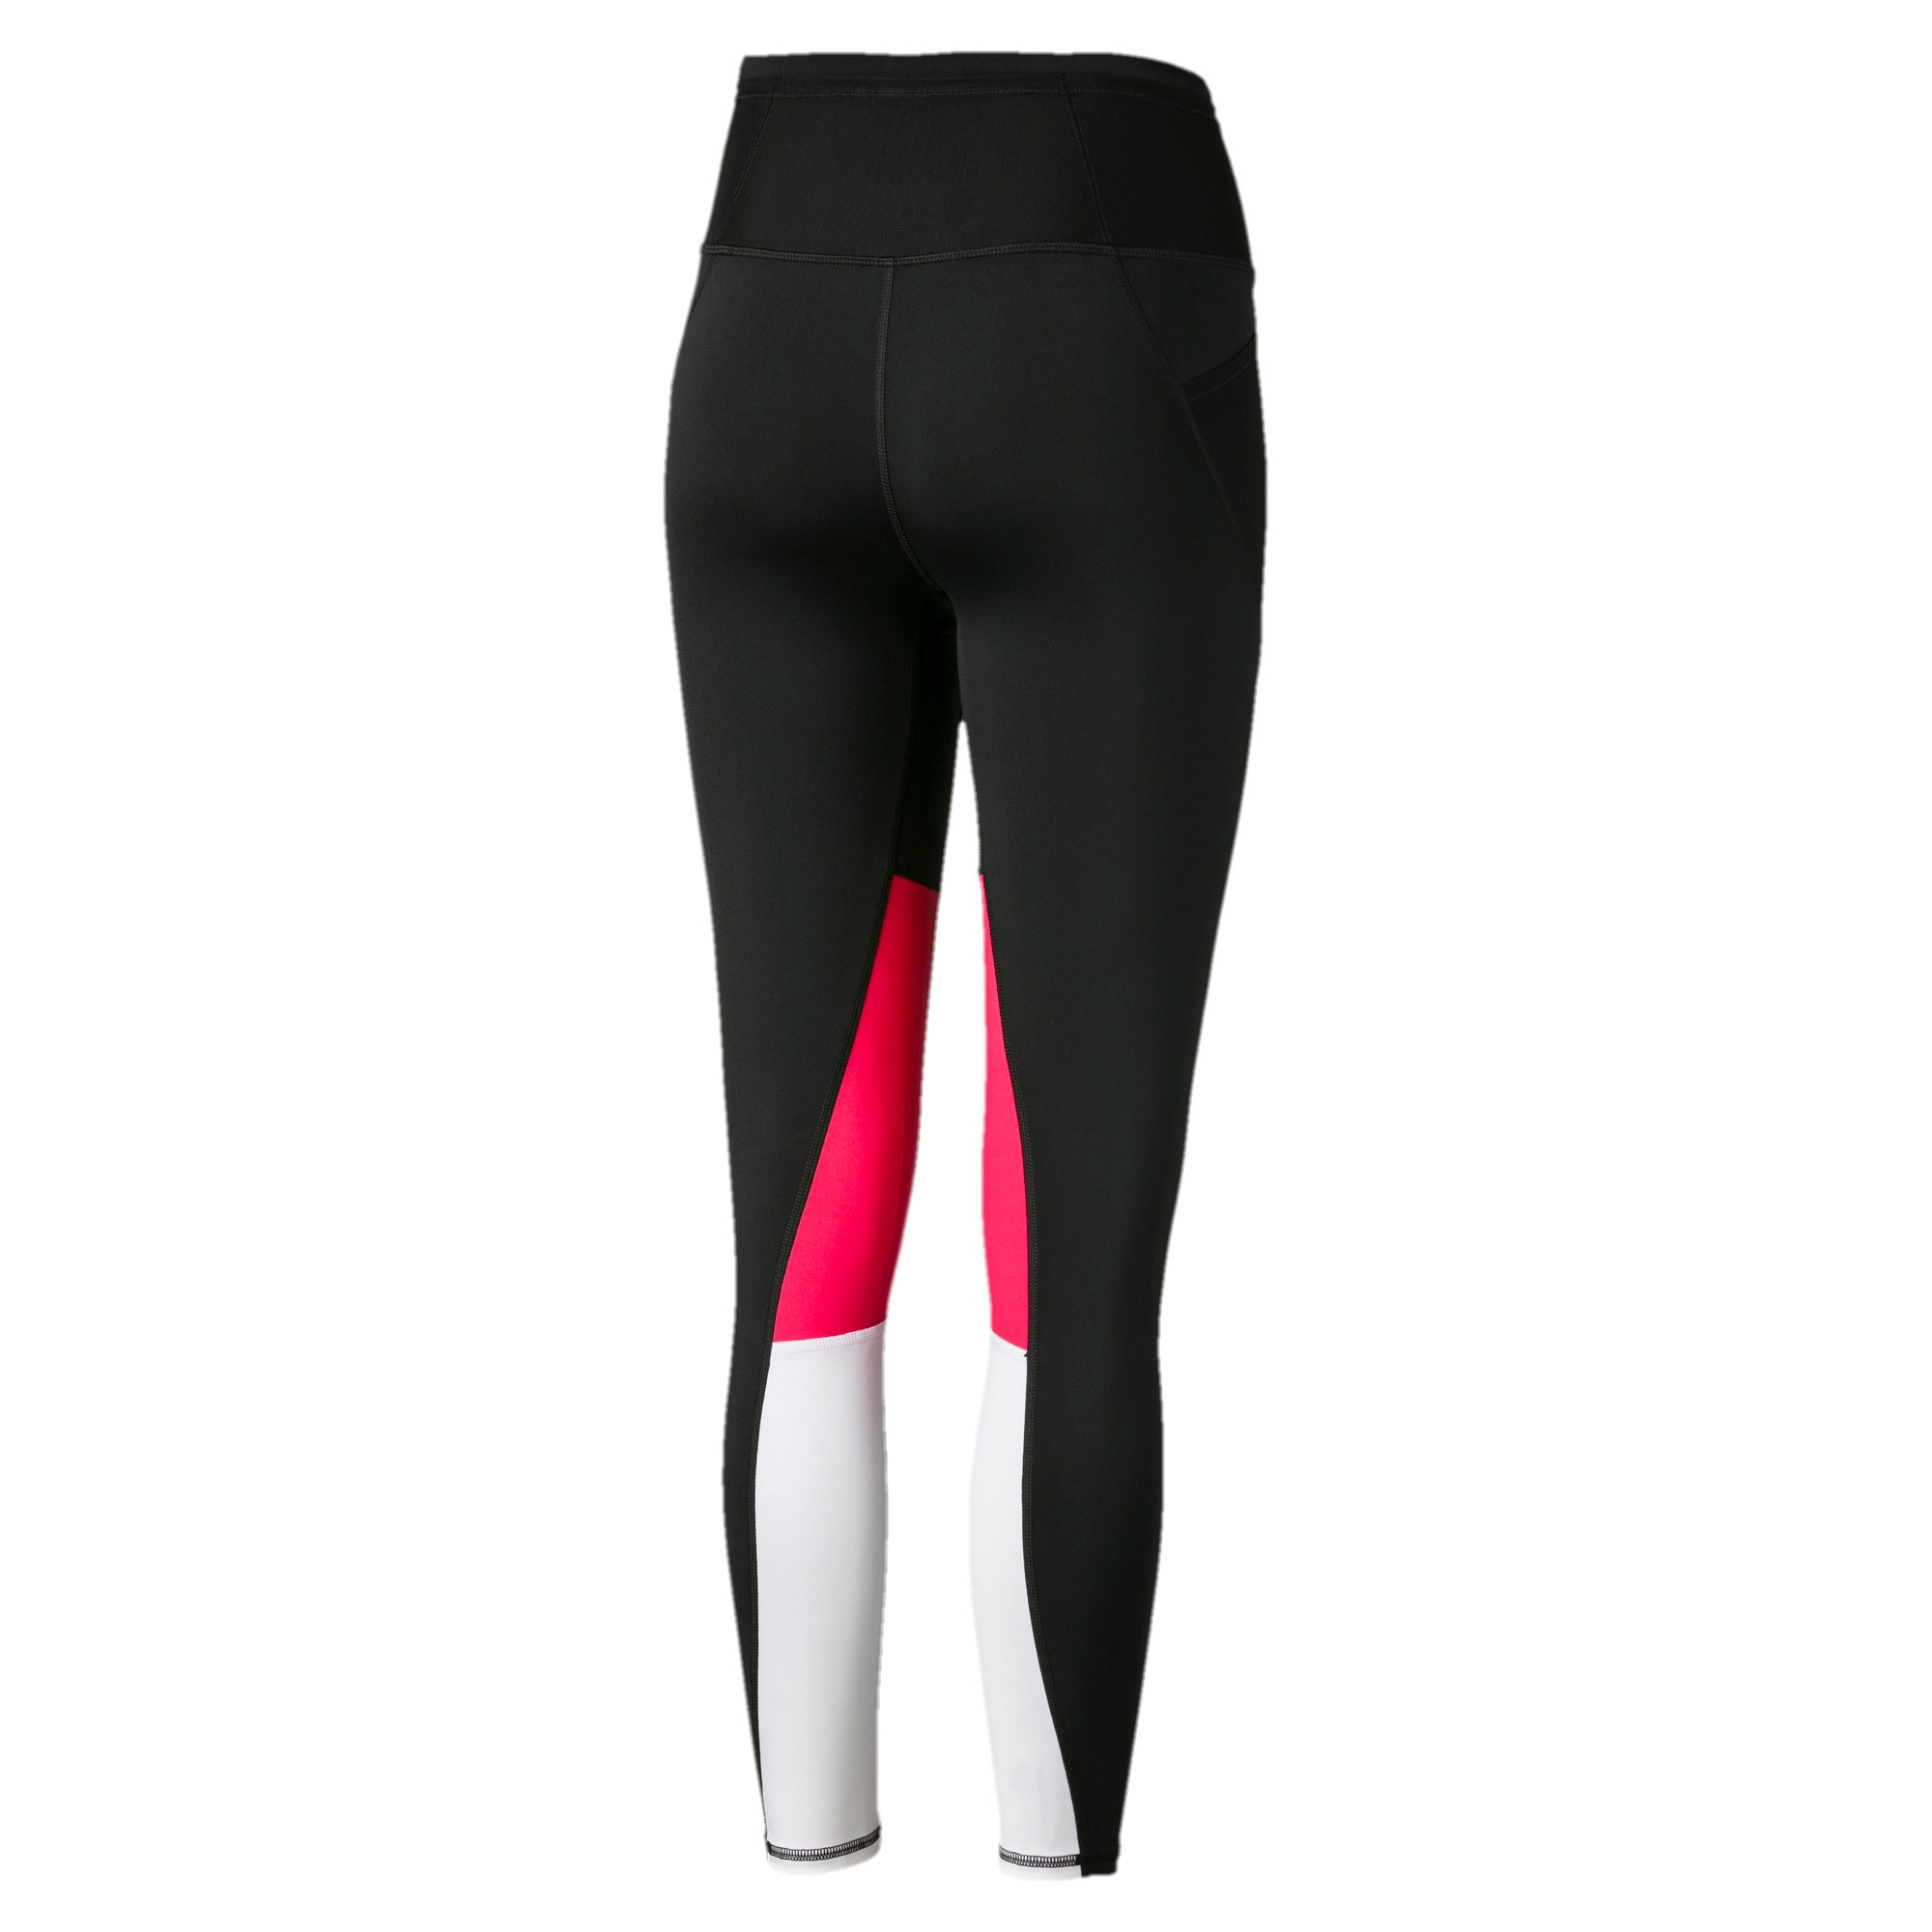 Thumbnail 5 of Feel It Women's 7/8 Leggings, Puma Black, medium